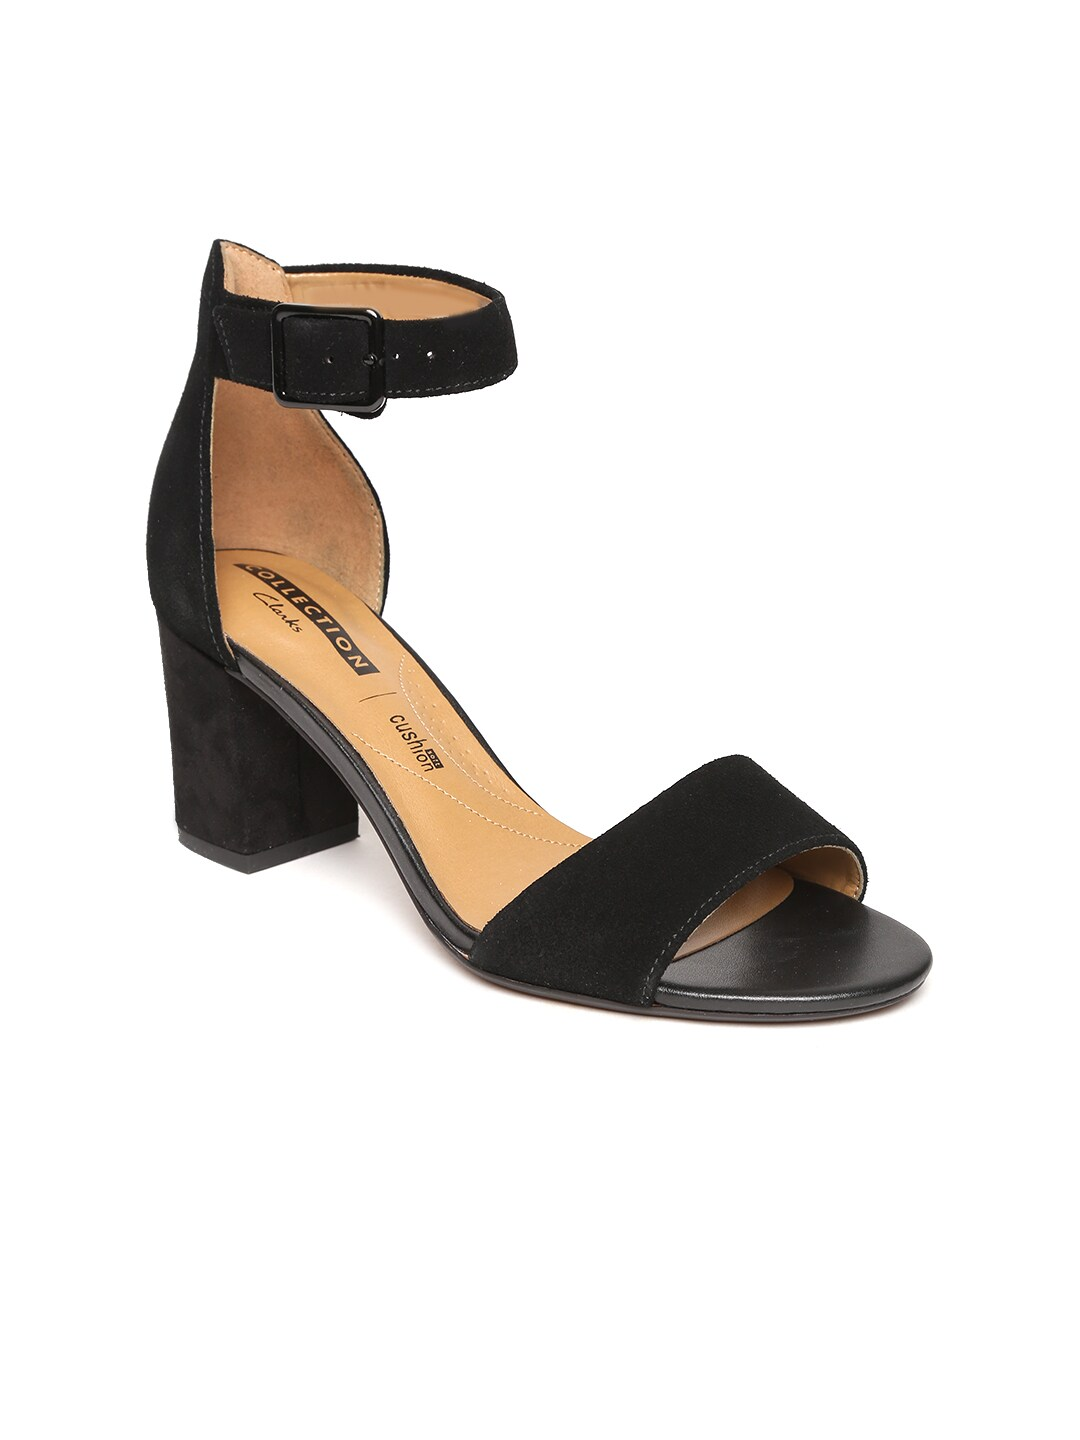 b48b5fd9bf5f5 Clarks Synthetic Heels - Buy Clarks Synthetic Heels online in India